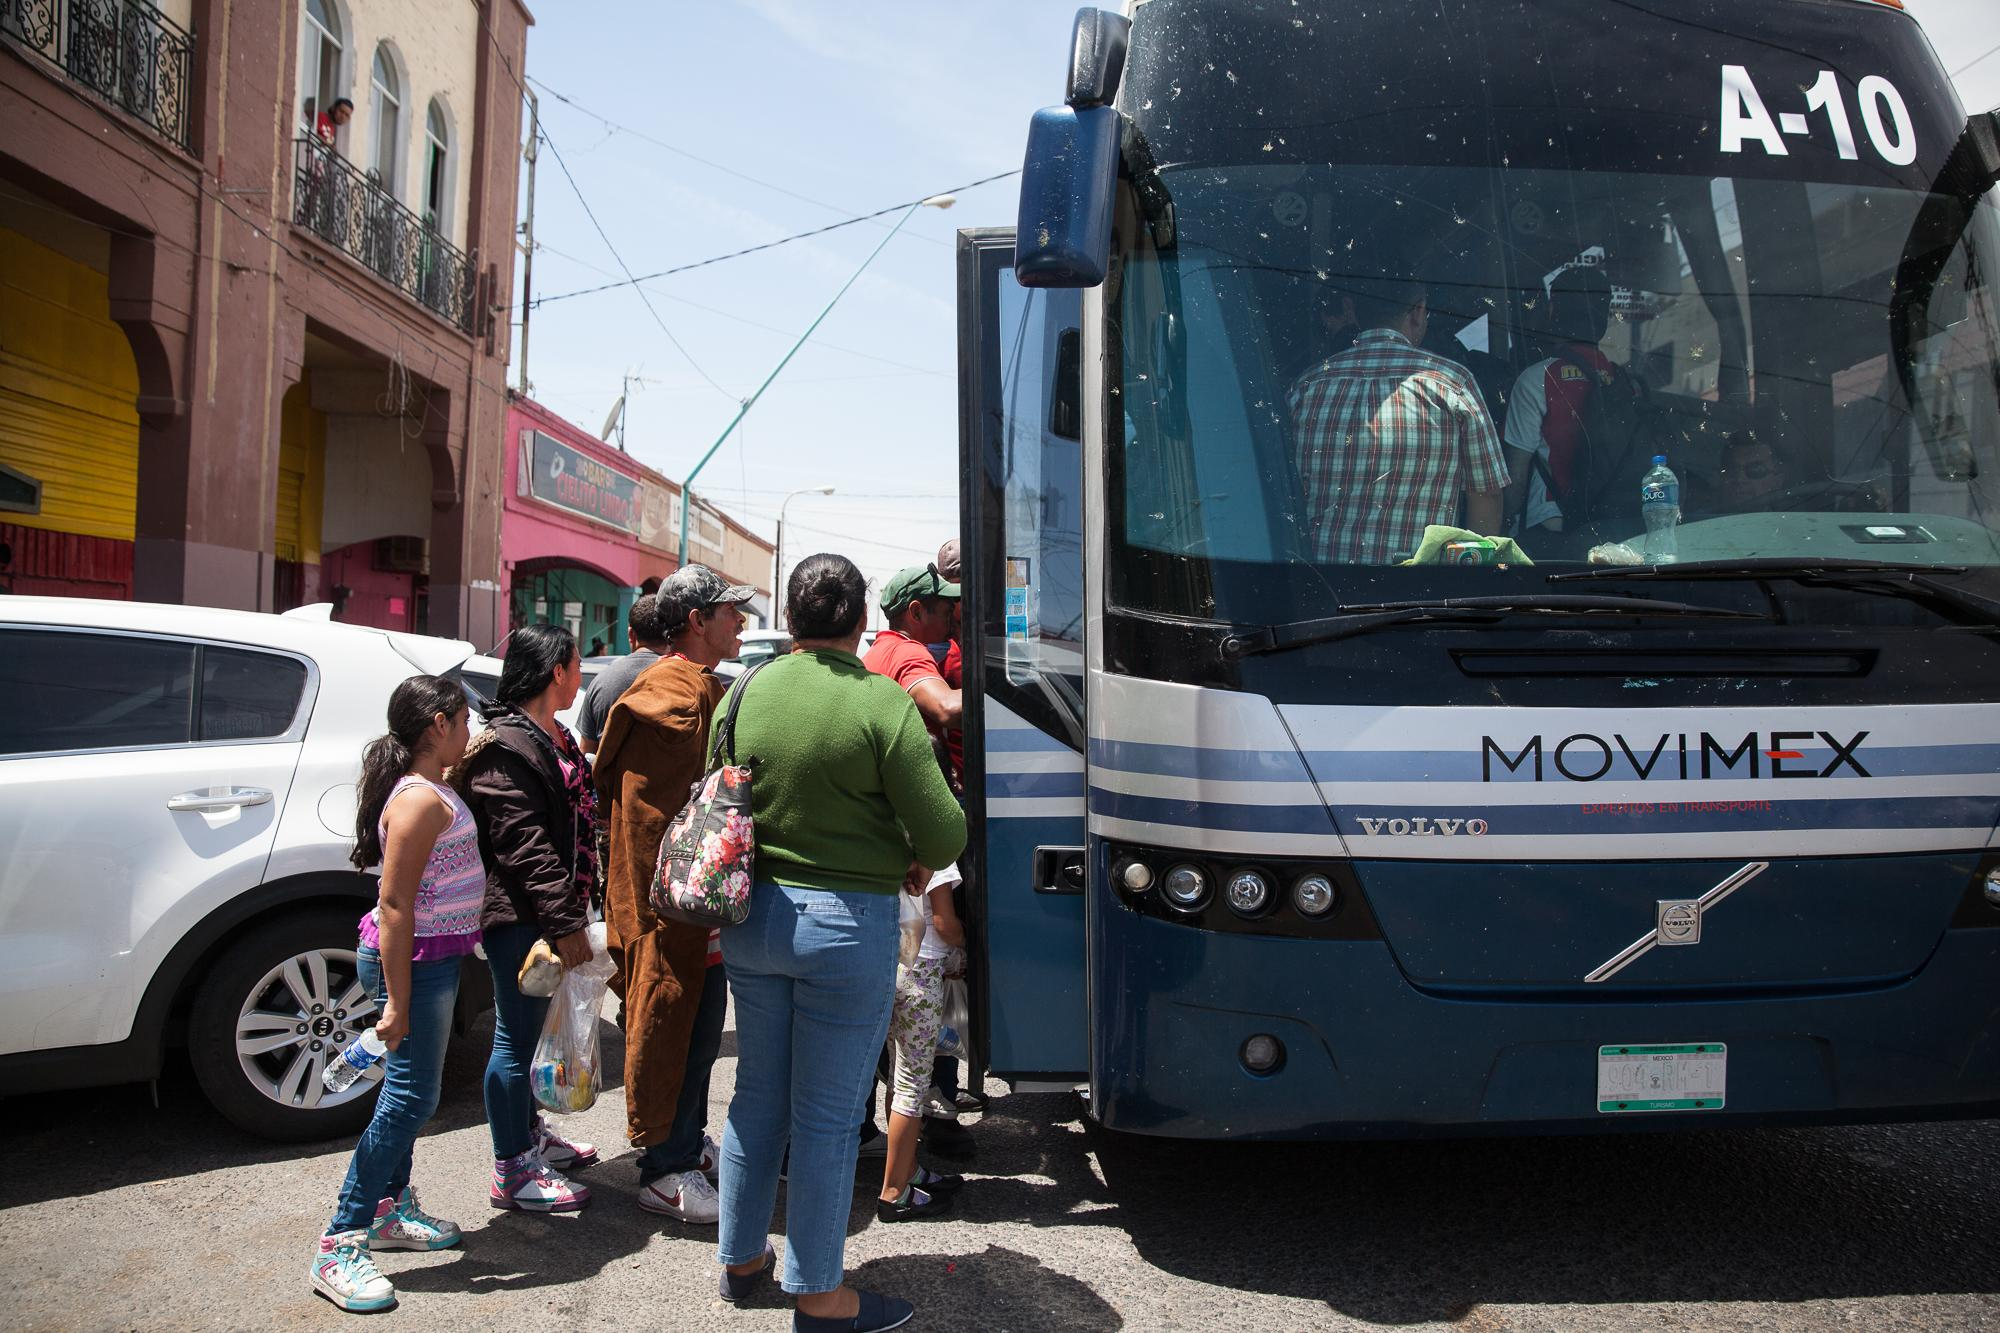 After stopping in Mexicali, MX, for two hours, migrants get back on the buses and make their way to Tijuana. The caravan that traveled through Mexico had over 1000 migrants traveling but it has dwindled down to a few hundred. The migrants traveling in the first two busses will stay at Juventud 2000 shelter. The shelter is set up with tents, food and supplies for the next couple of days.